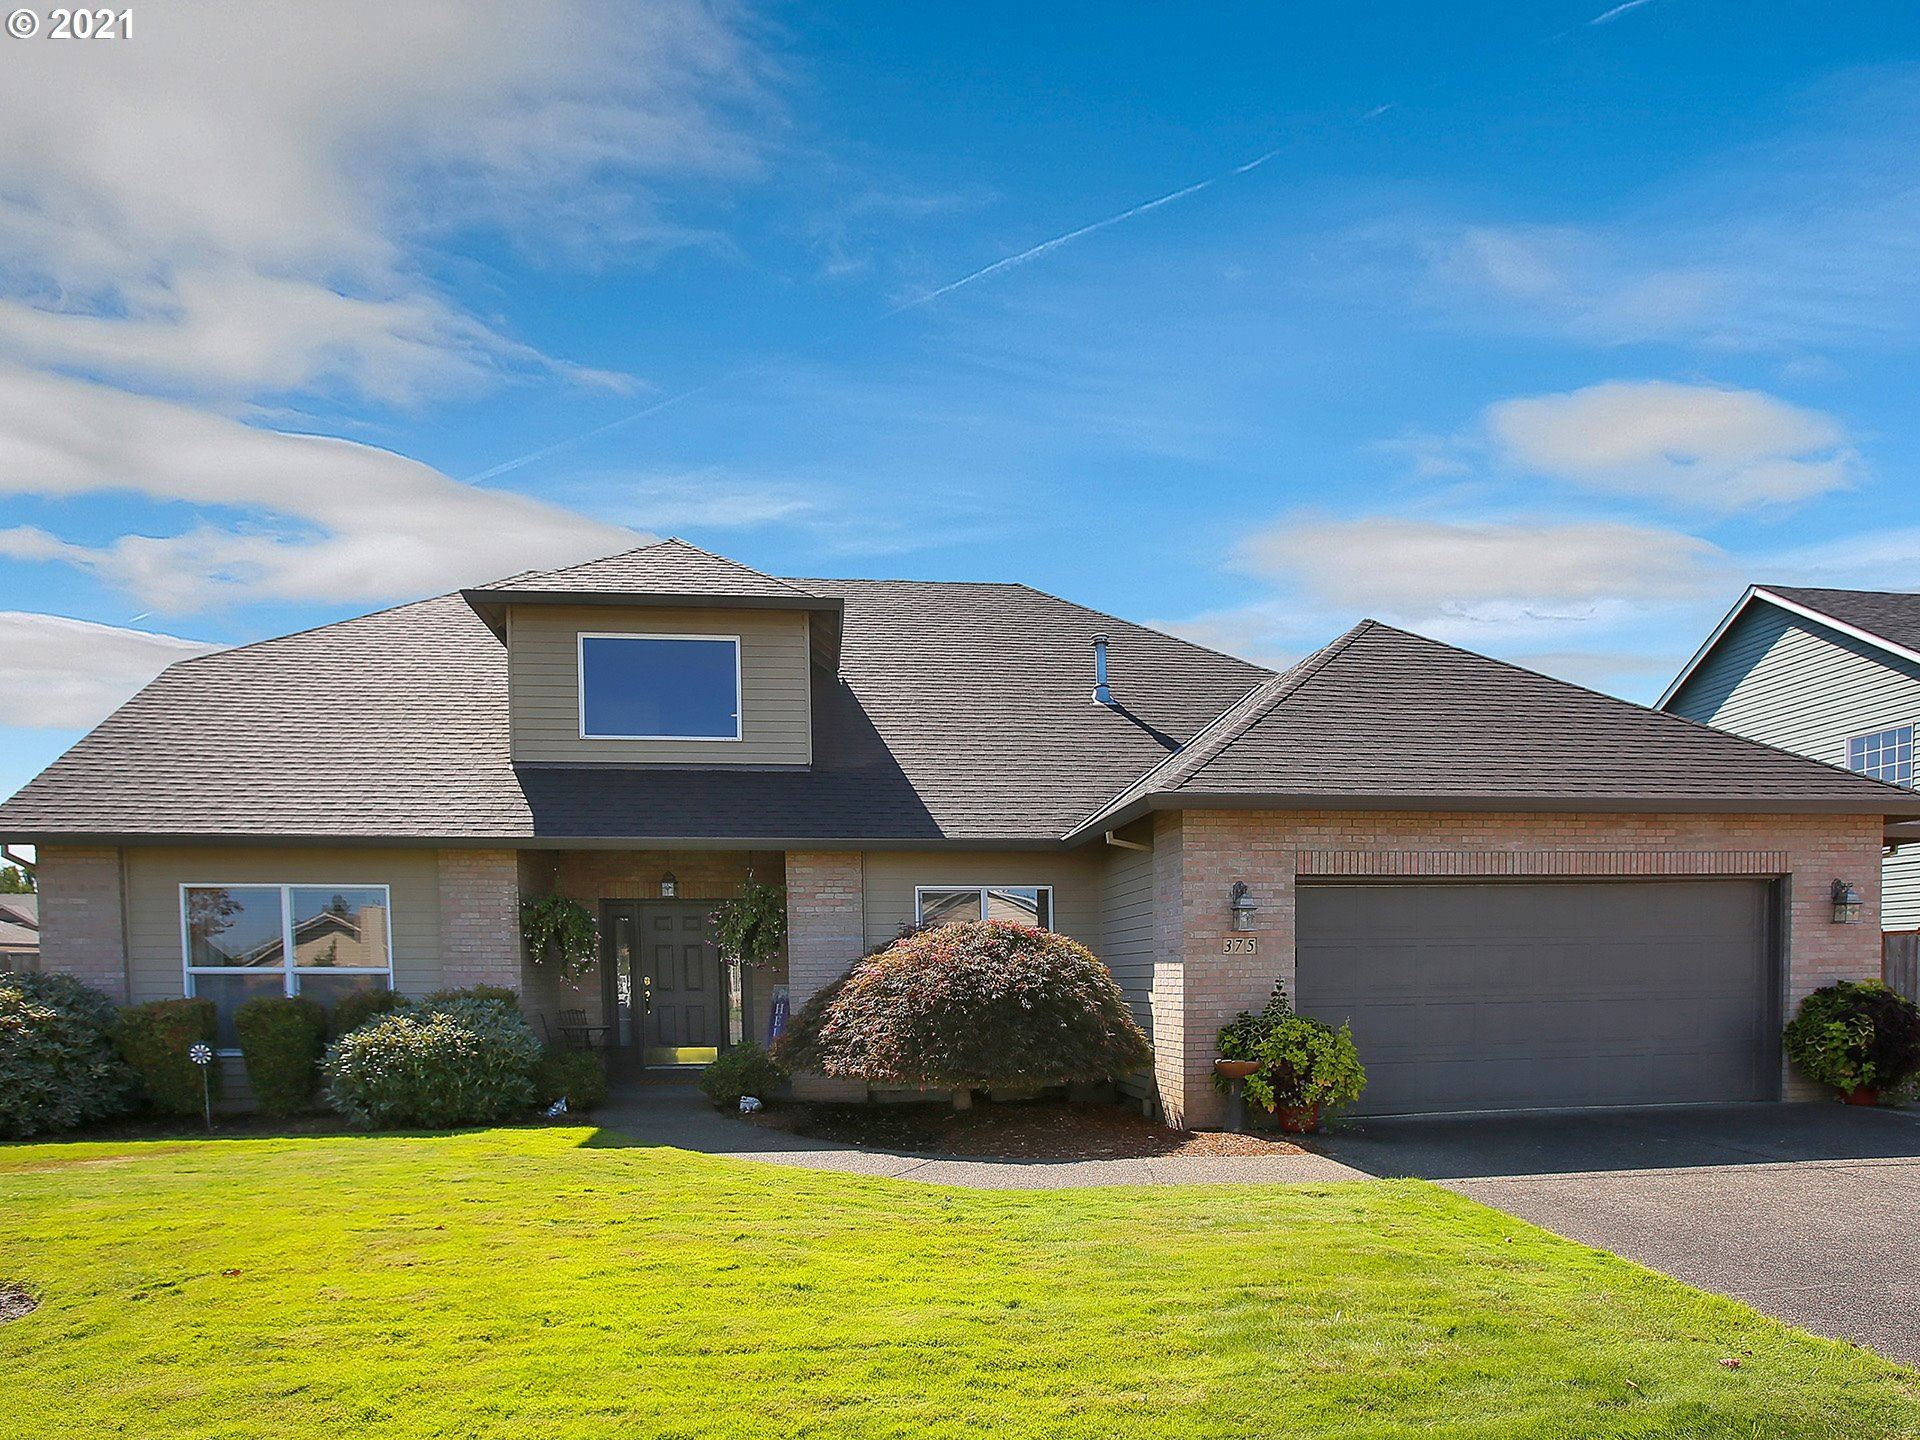 375 SE 8TH AVE, Canby, OR 97013 - MLS#: 21535127